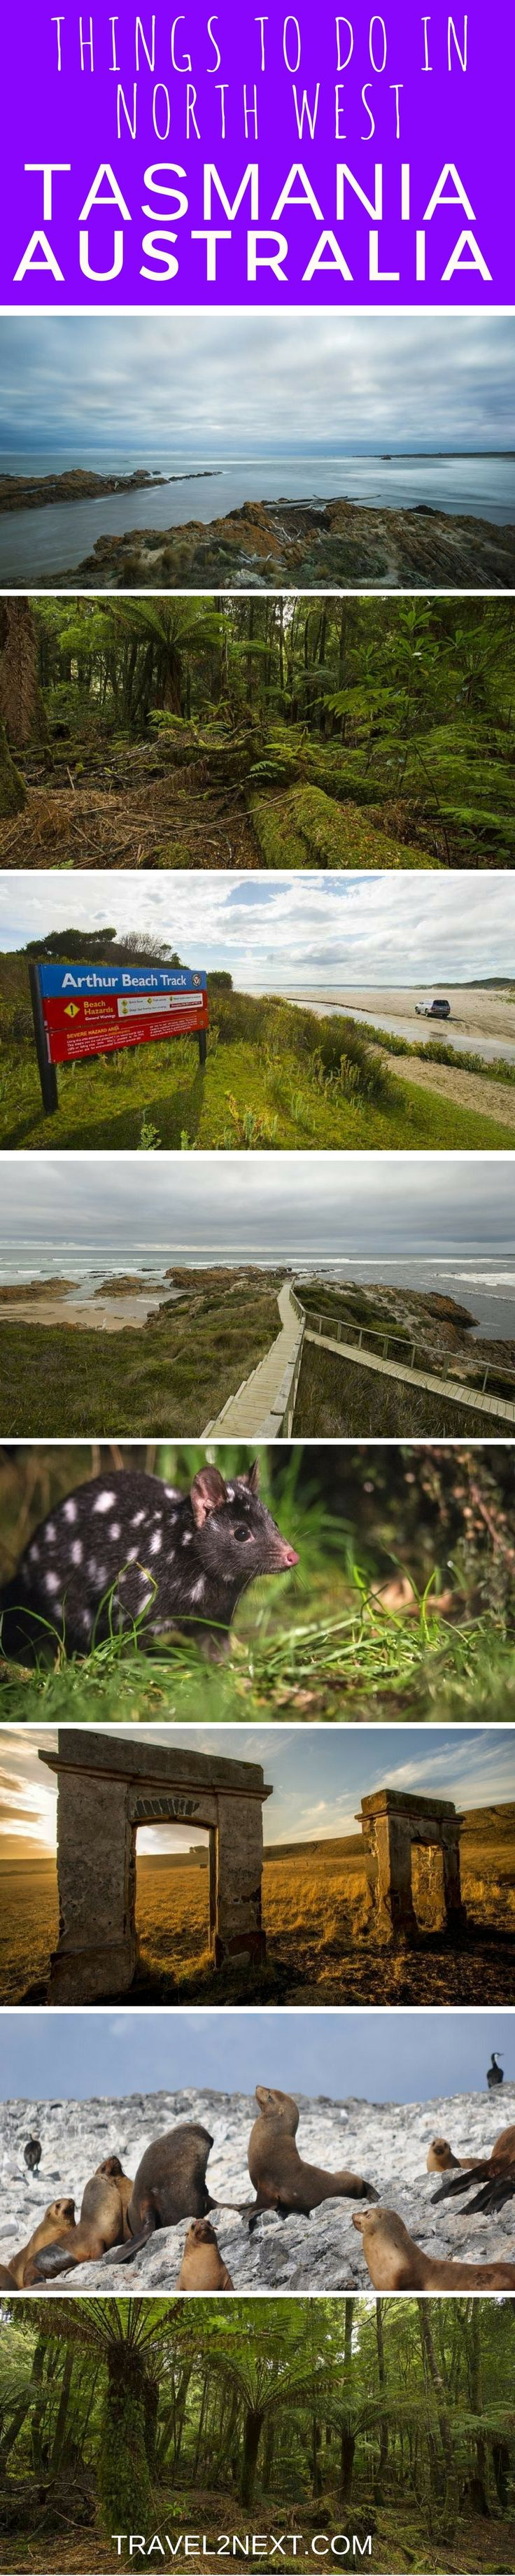 10 things to do in north west Tasmania (Australia). Tasmania's North West region is diverse and captivating.